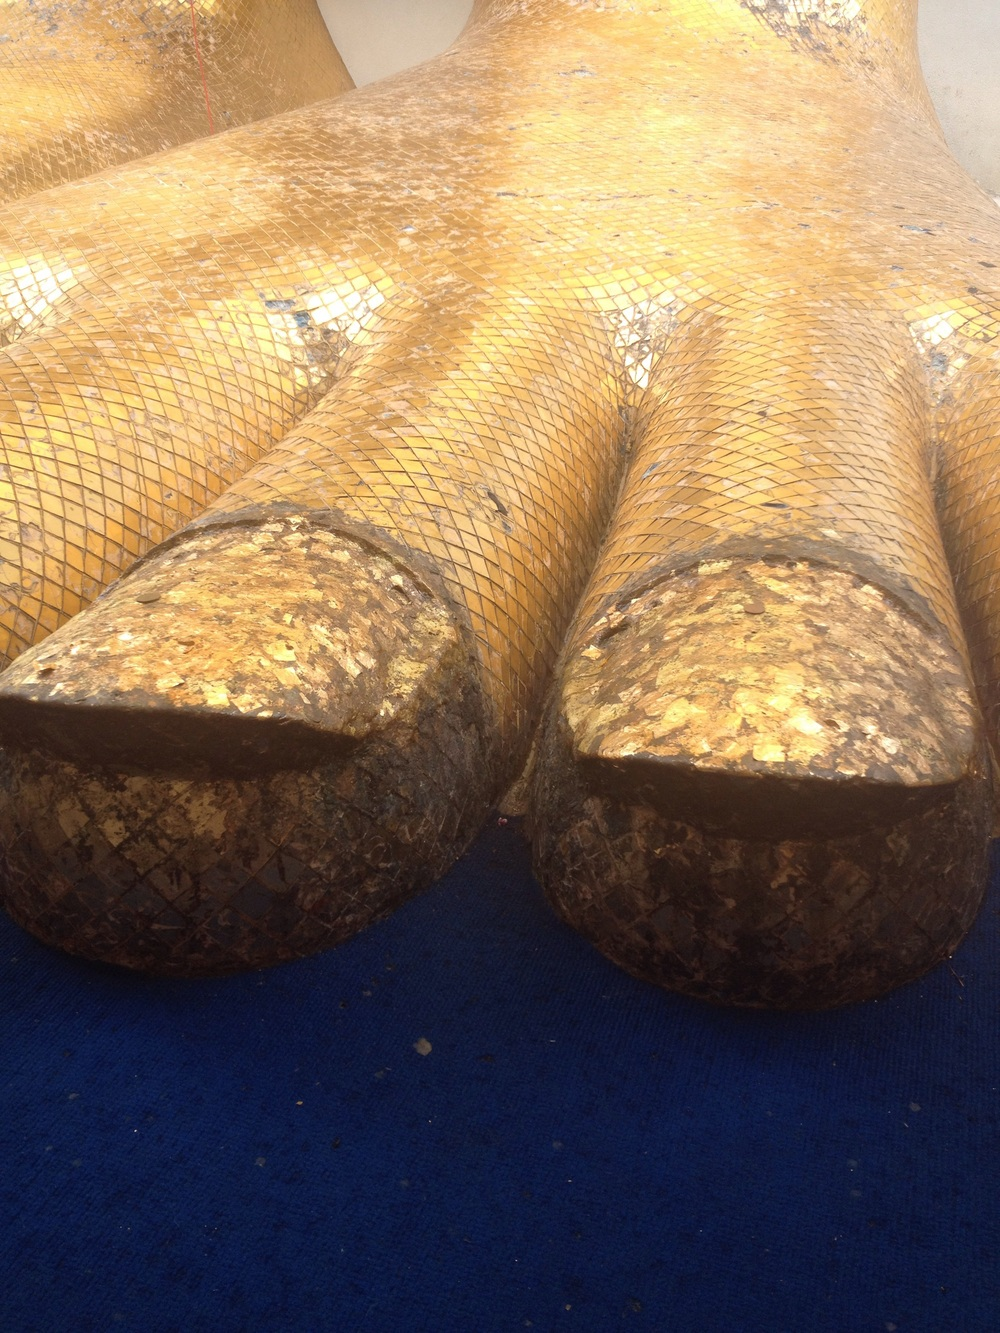 Giant gold toenails